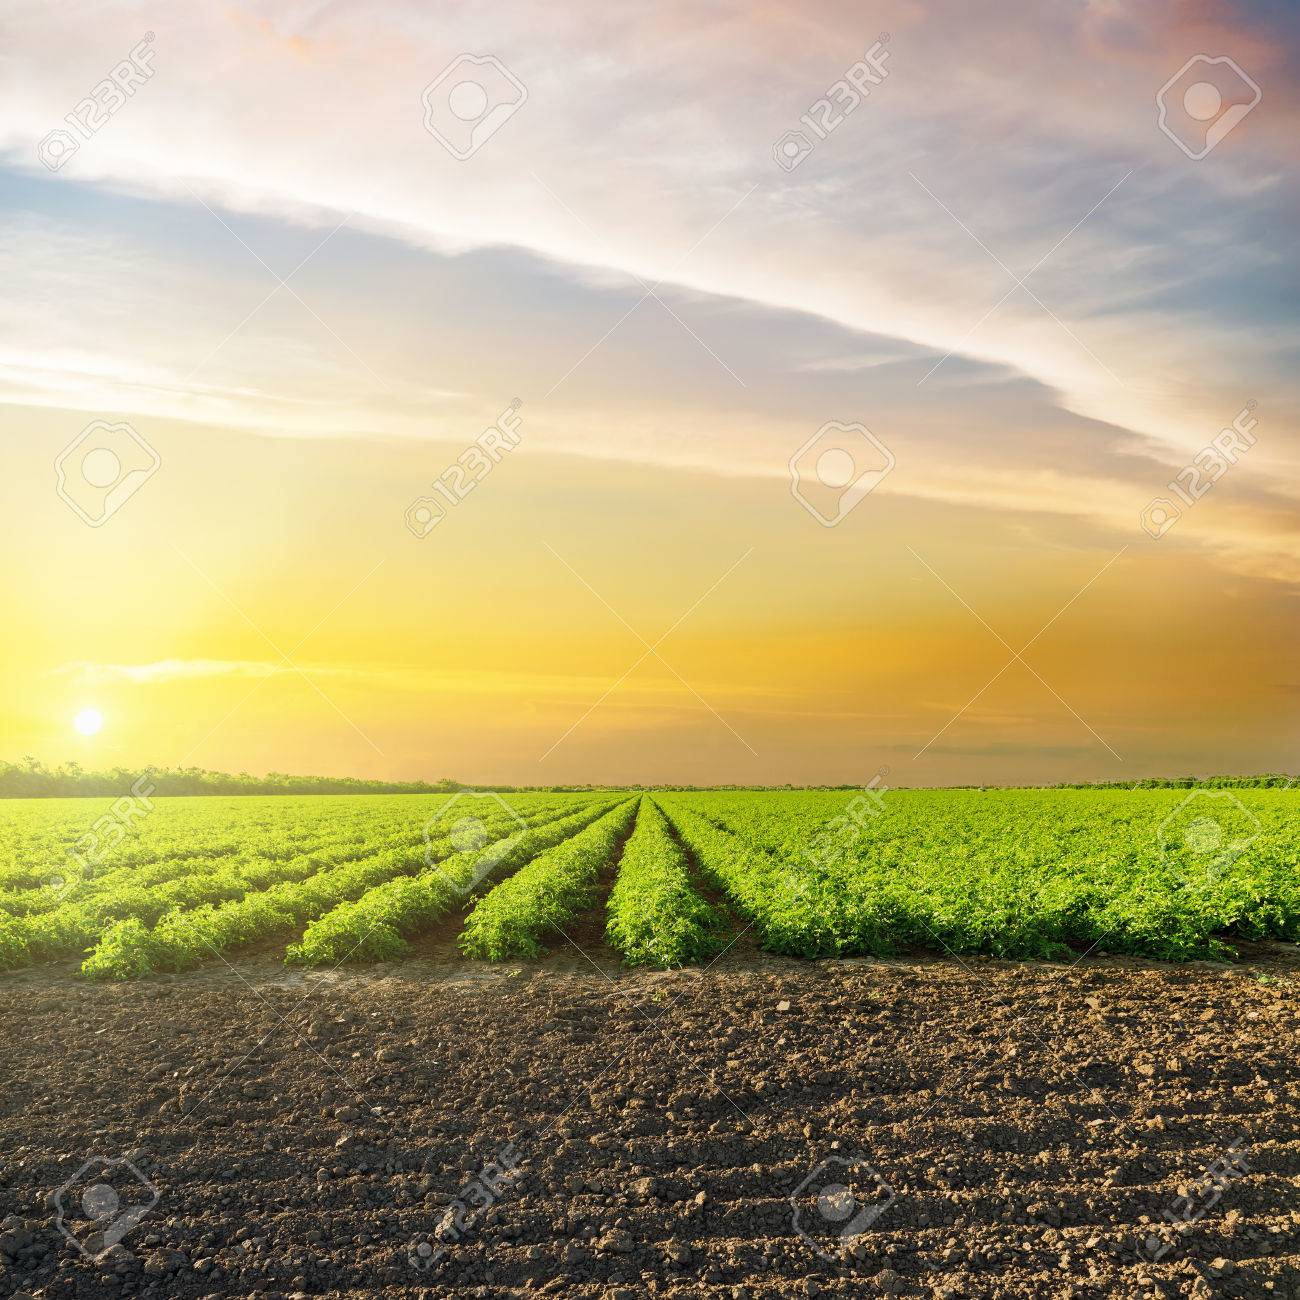 orange sunset in clouds over green agriculture field with tomatoes - 79986662